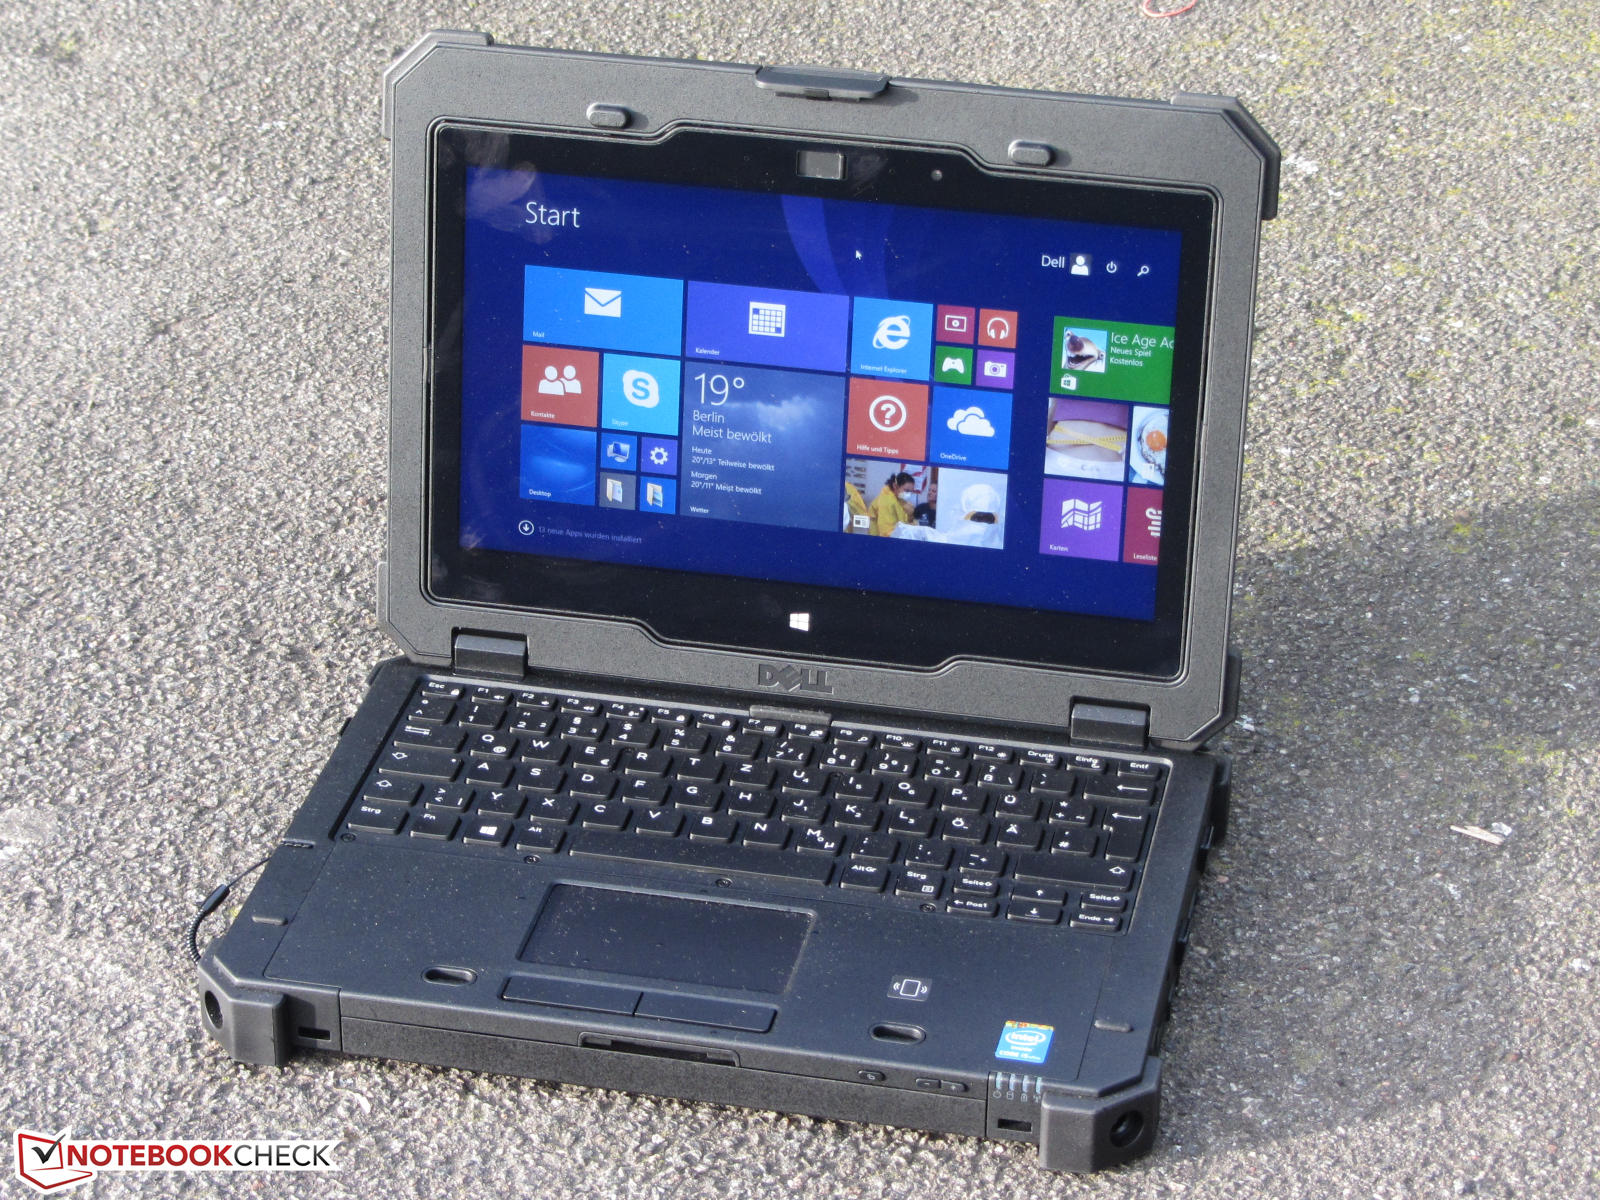 Dell Latitude 12 Series Notebookcheck Net External Reviews